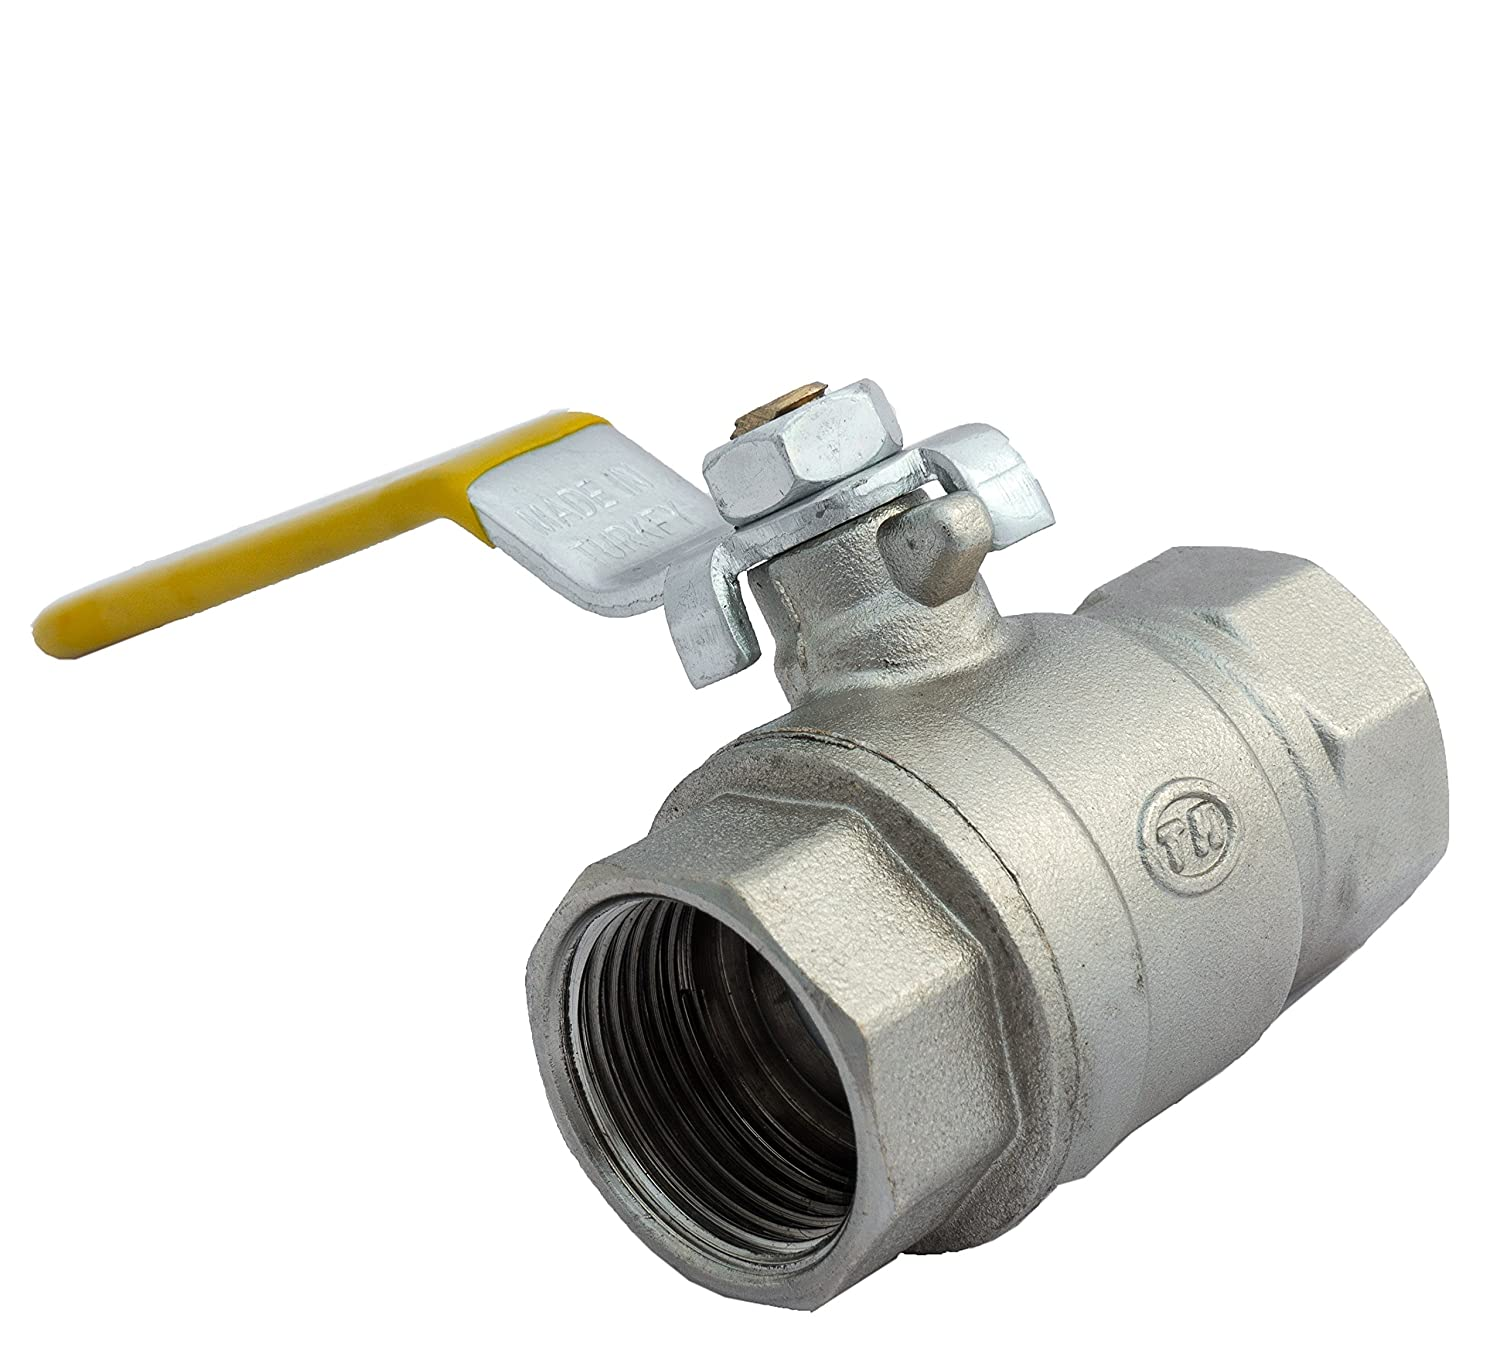 3/4' Gas Ball Valve FEMALE X FEMALE BSP TF with Yellow Lever Handle BFG